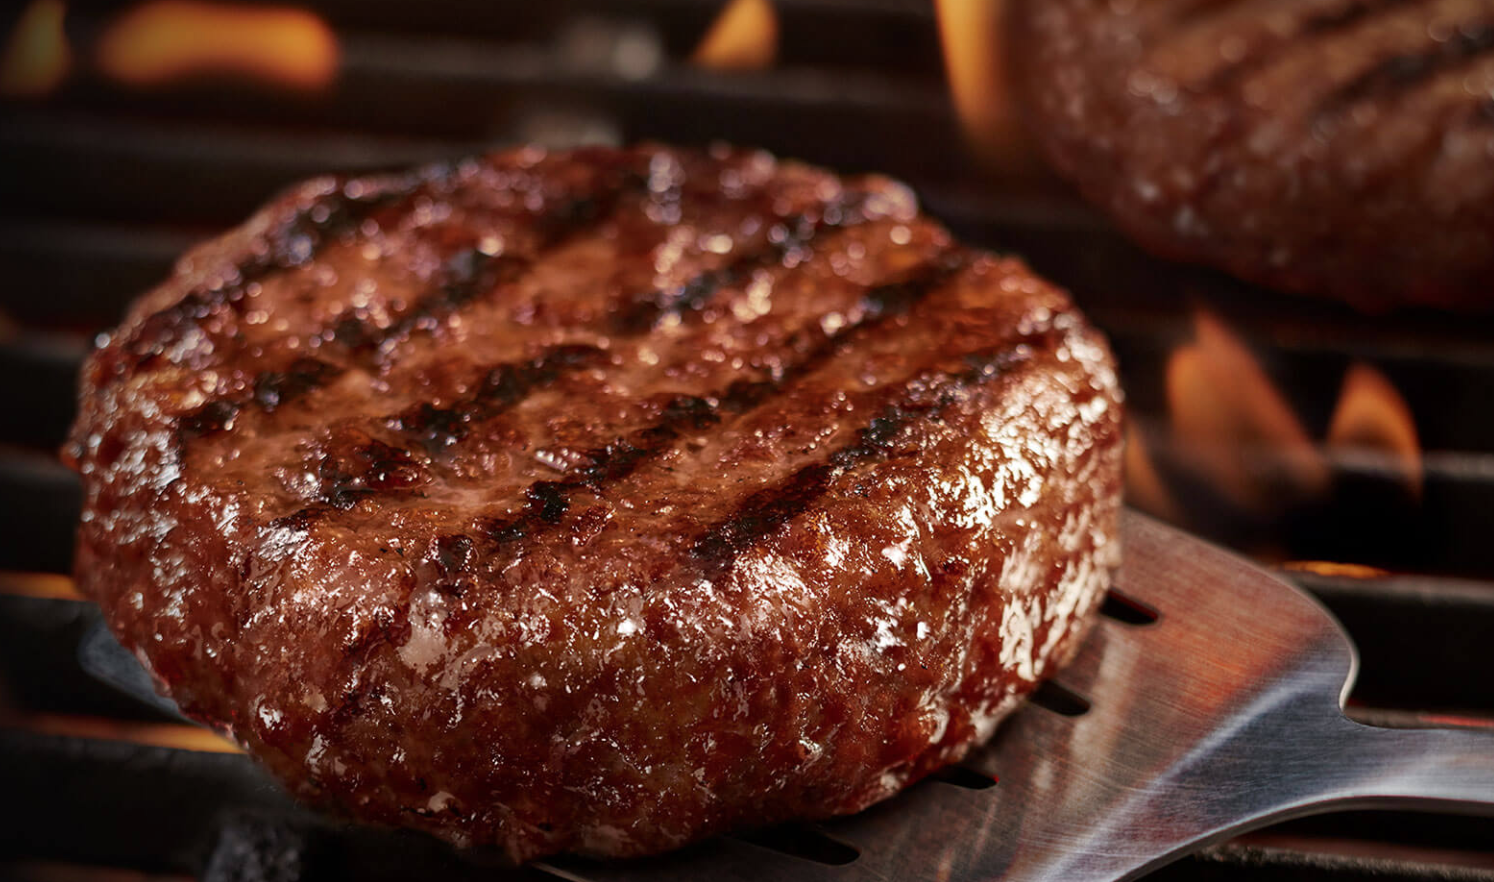 Beyond Meats IPO success signals meat alternatives here to stay